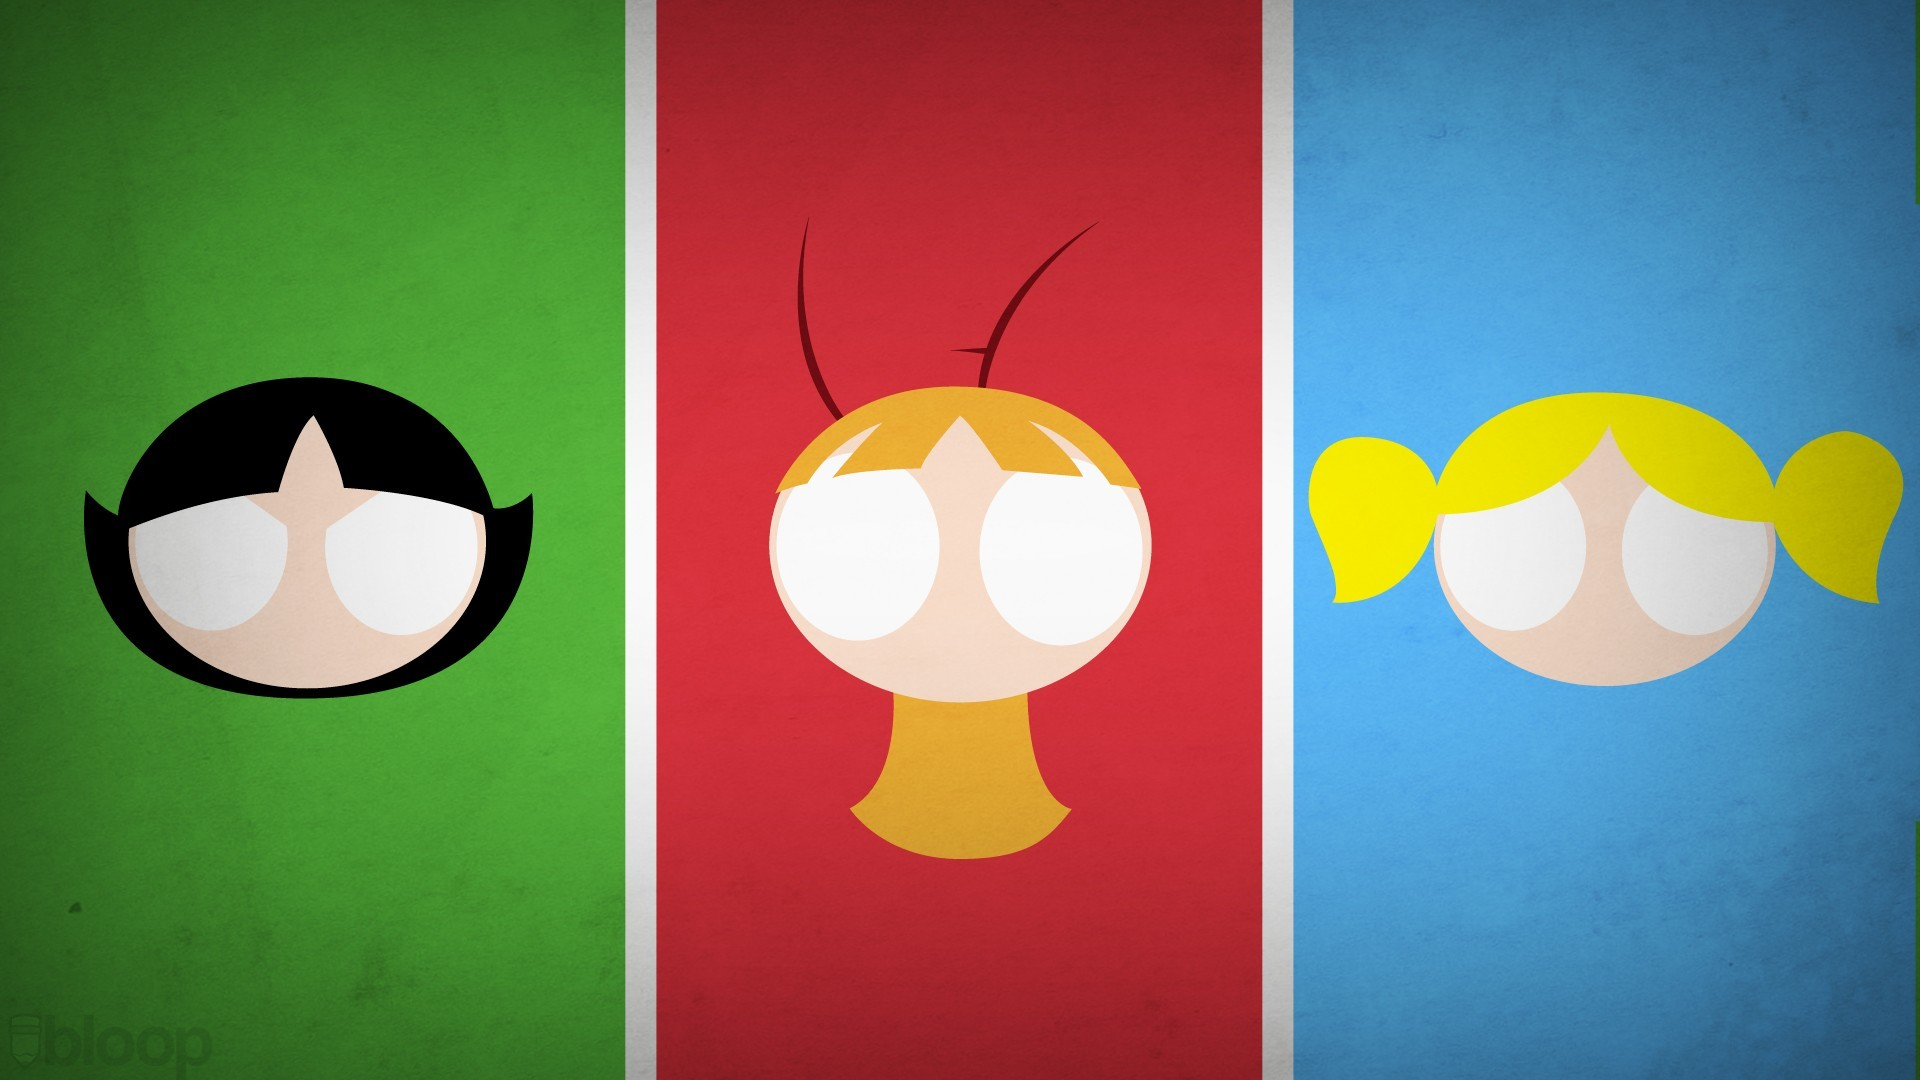 1920x1080 Bloop's New Superhero Wallpapers over at DeviantArt offer a minimalist take  on numerous superheroes and villains. I'm partial to the Power Puff Girls  ...